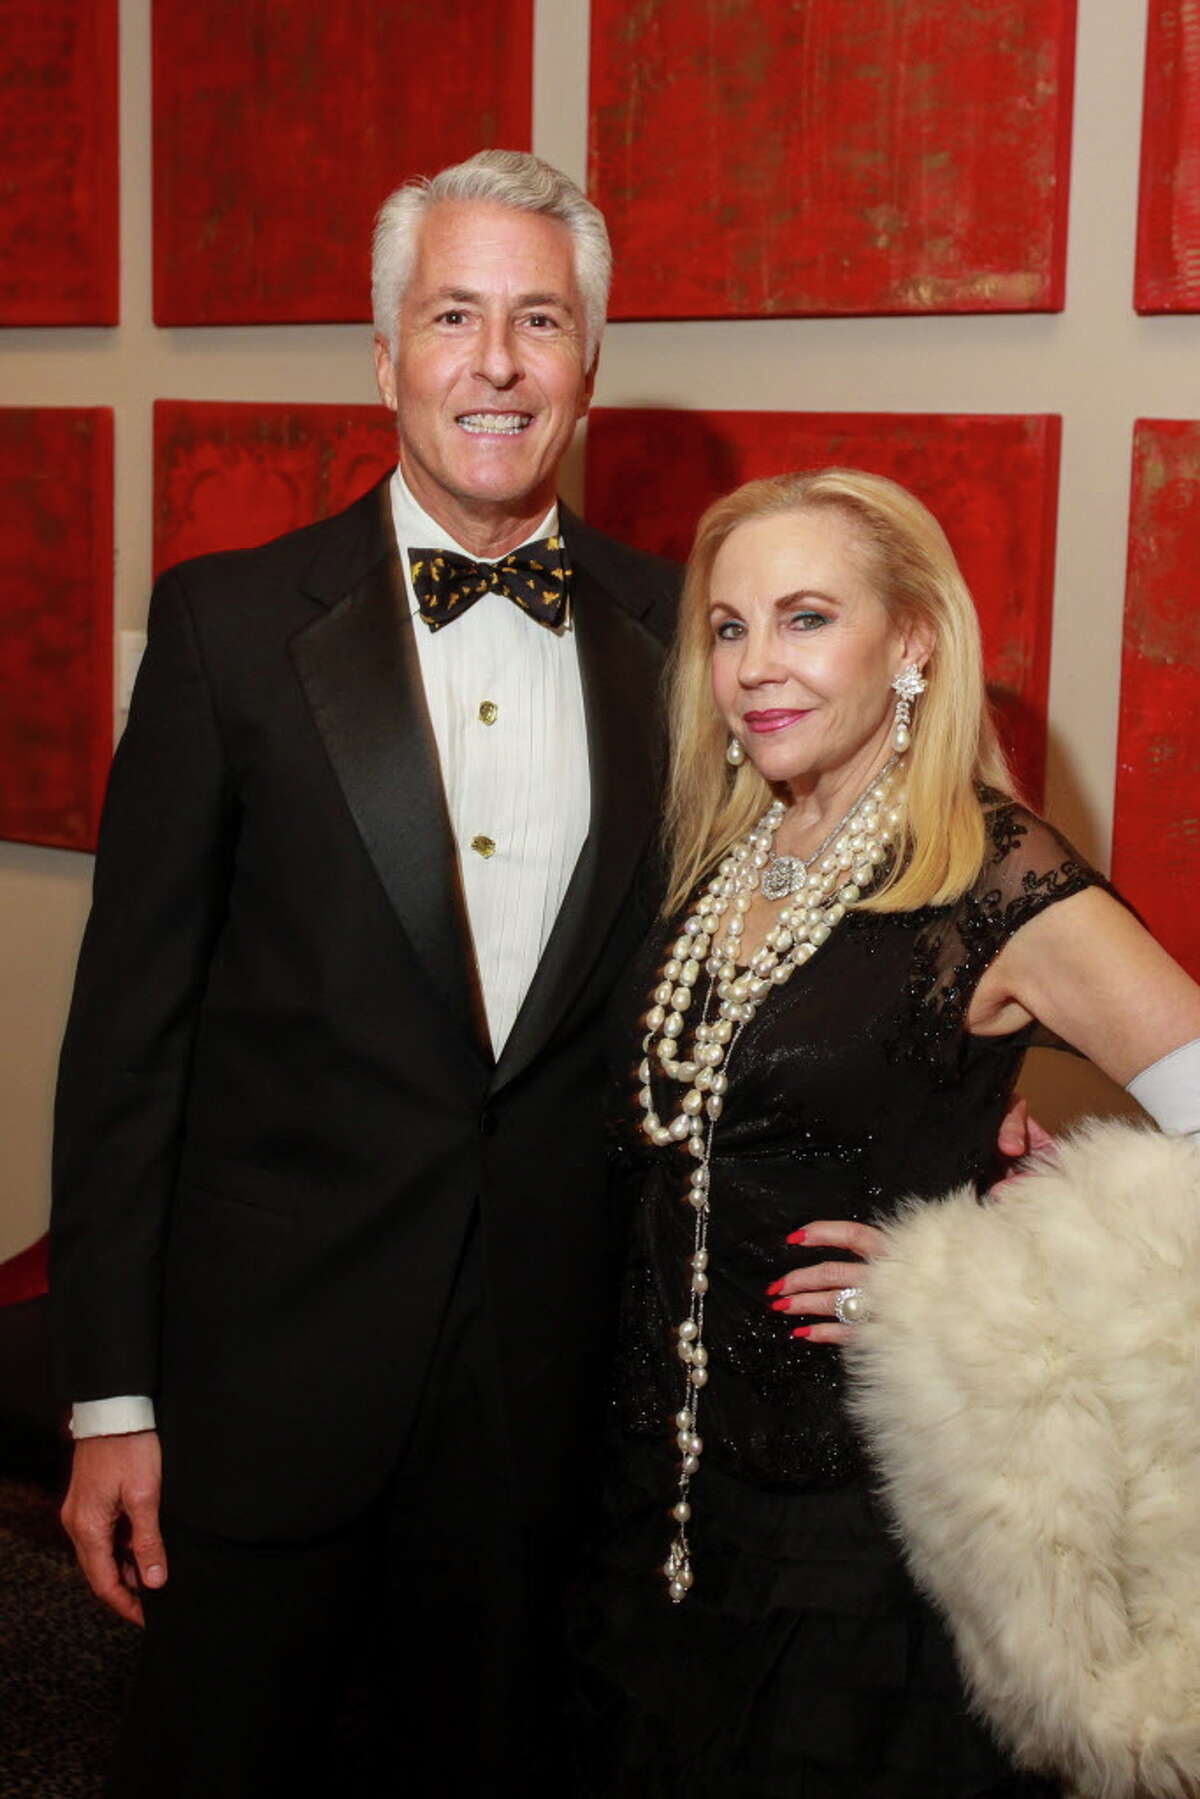 Brian Spack and Carolyn Farb at the KnowAutism underwriters dinner hosted by Van Cleef & Arpels at the Hotel ZaZa. (For the Chronicle/Gary Fountain, January 18, 2017)